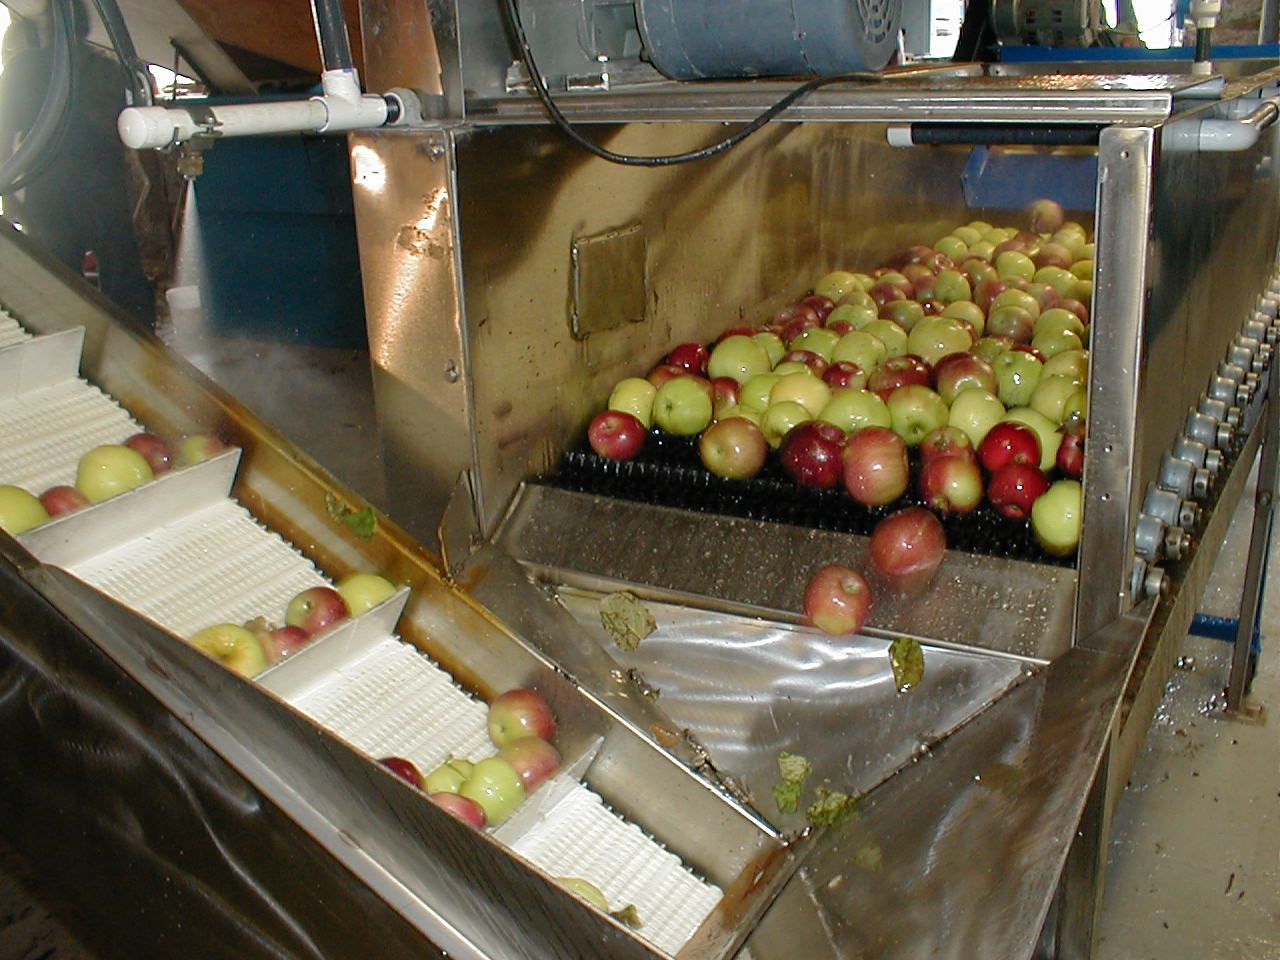 """2. After the apples soaked, they are scrubbed and rinsed in fresh water. After this sanitation process is complete, the apples ride up a conveyor belt to the """"Hammer Mill"""" where they are chopped into small pieces."""